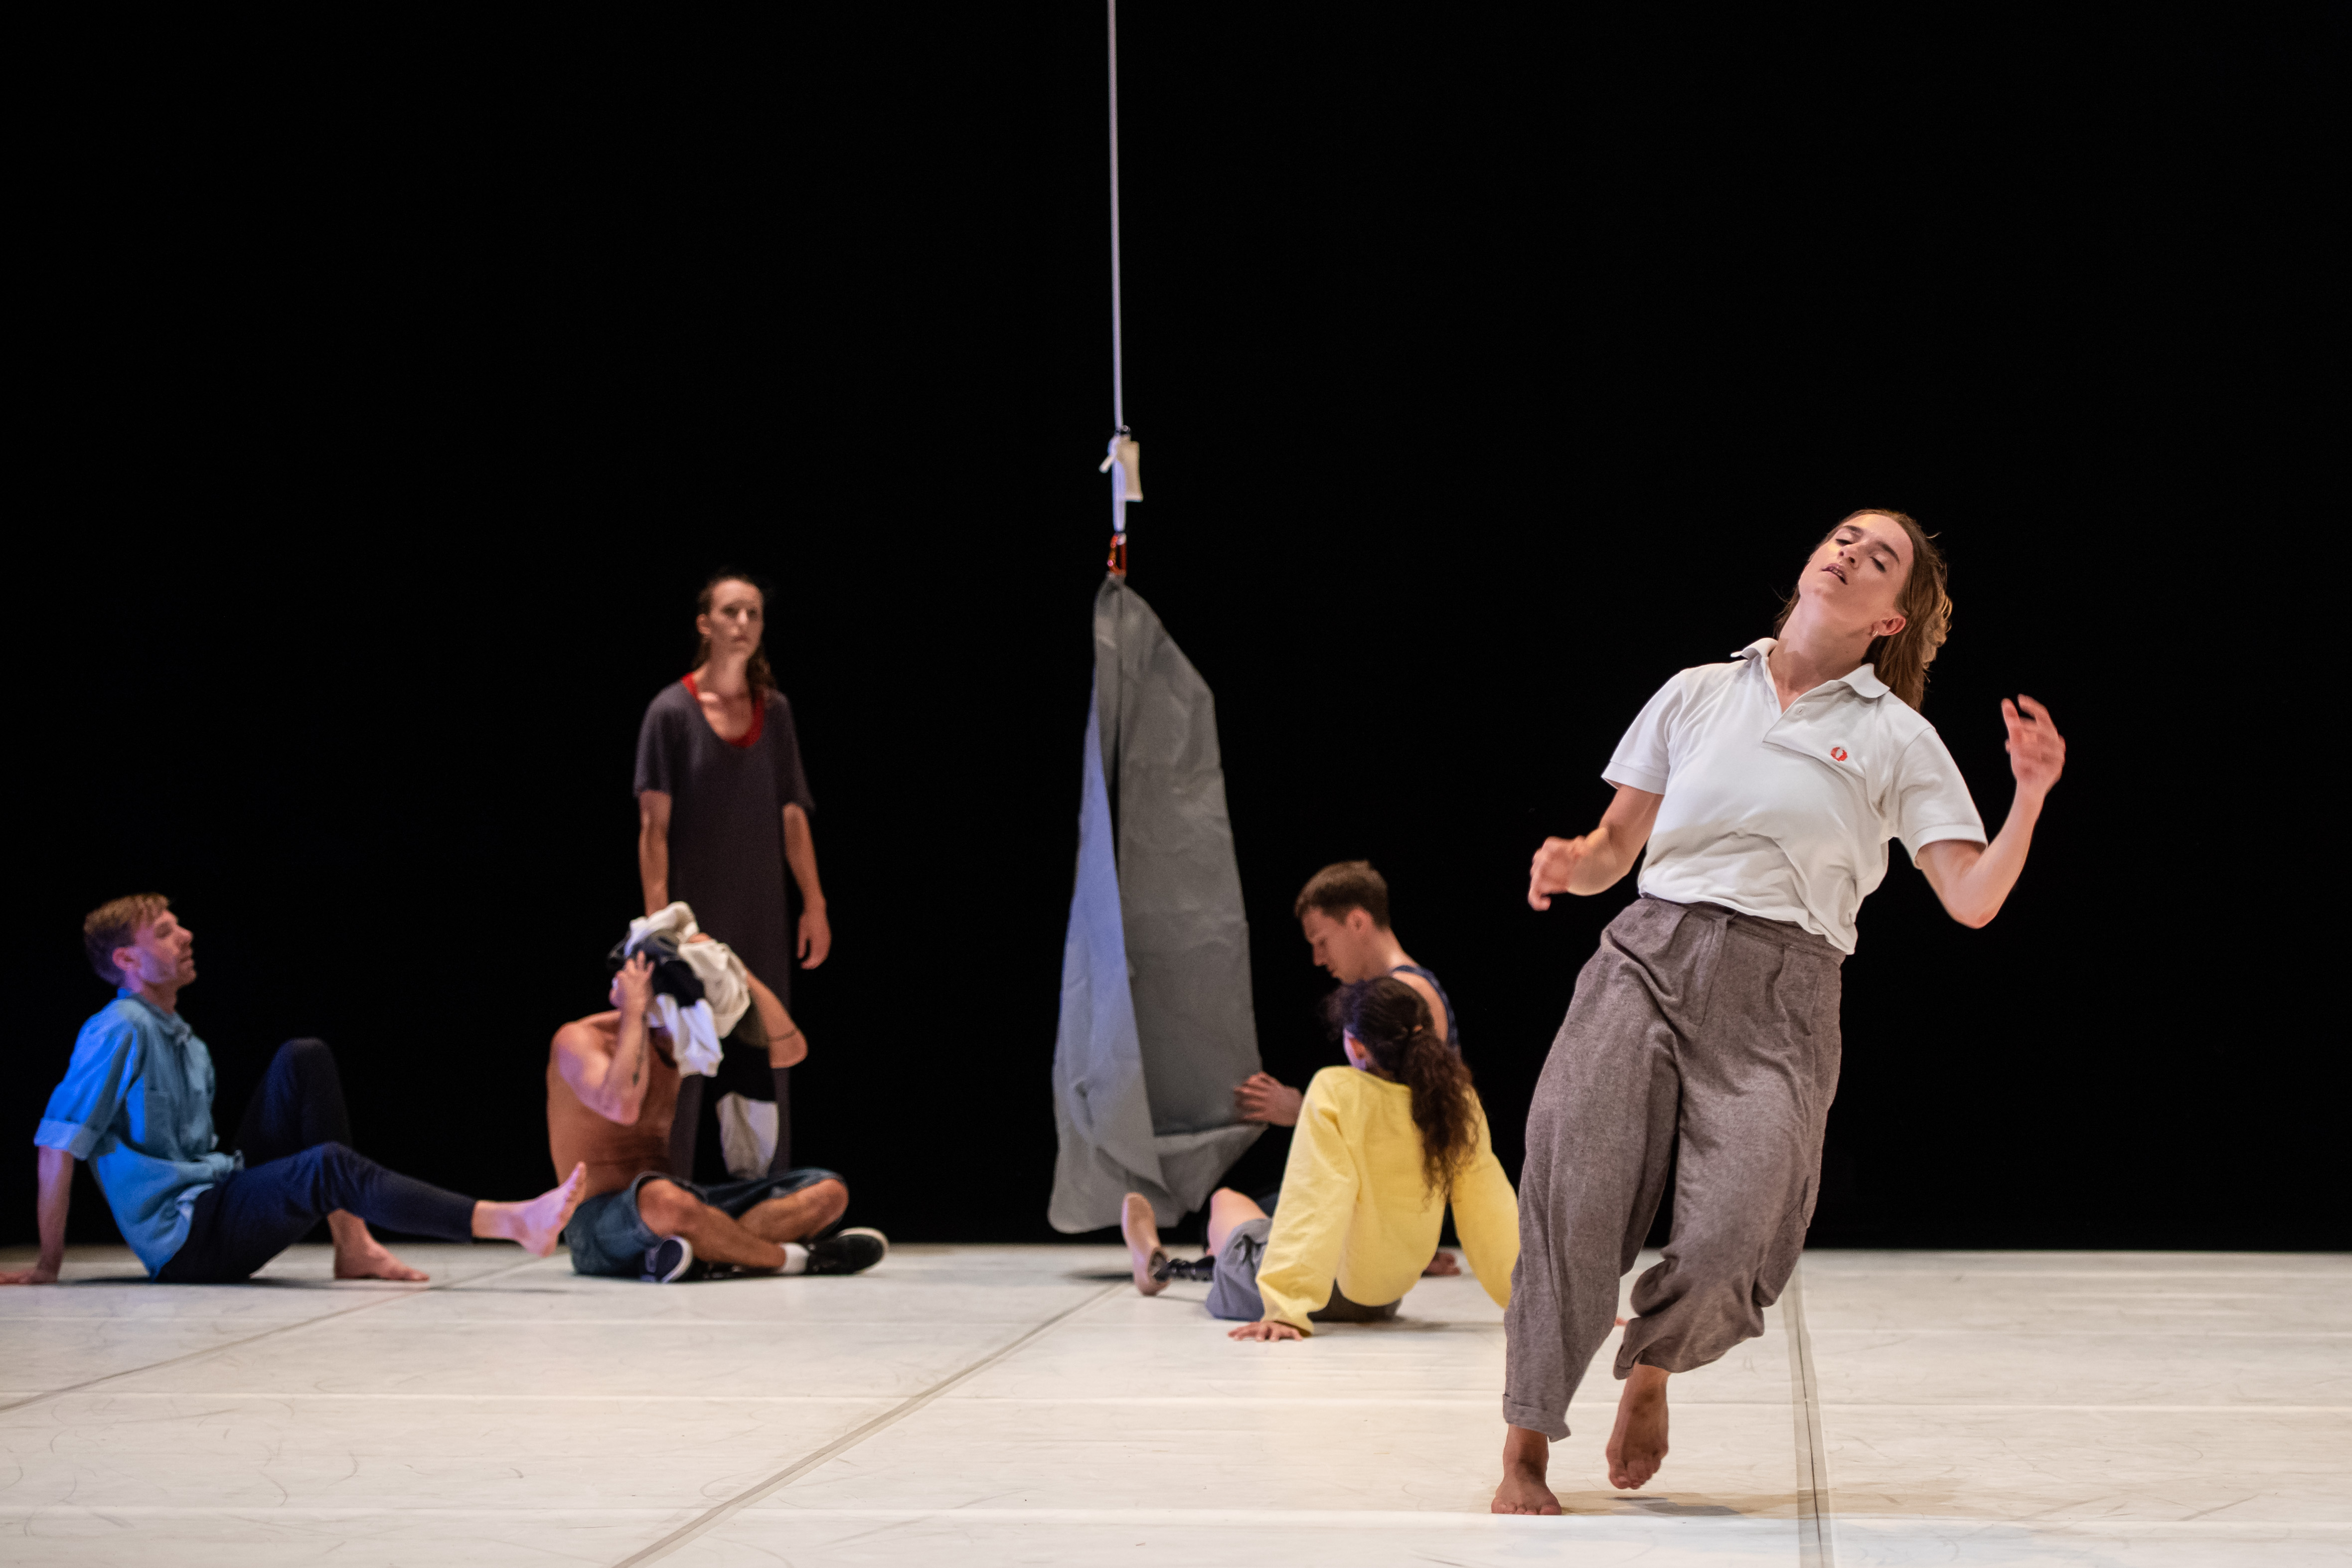 Candoco perform Hot Mess, choreographed by Theo Clinkard performed at Laban Theatre, London, UK, 25th July 2019